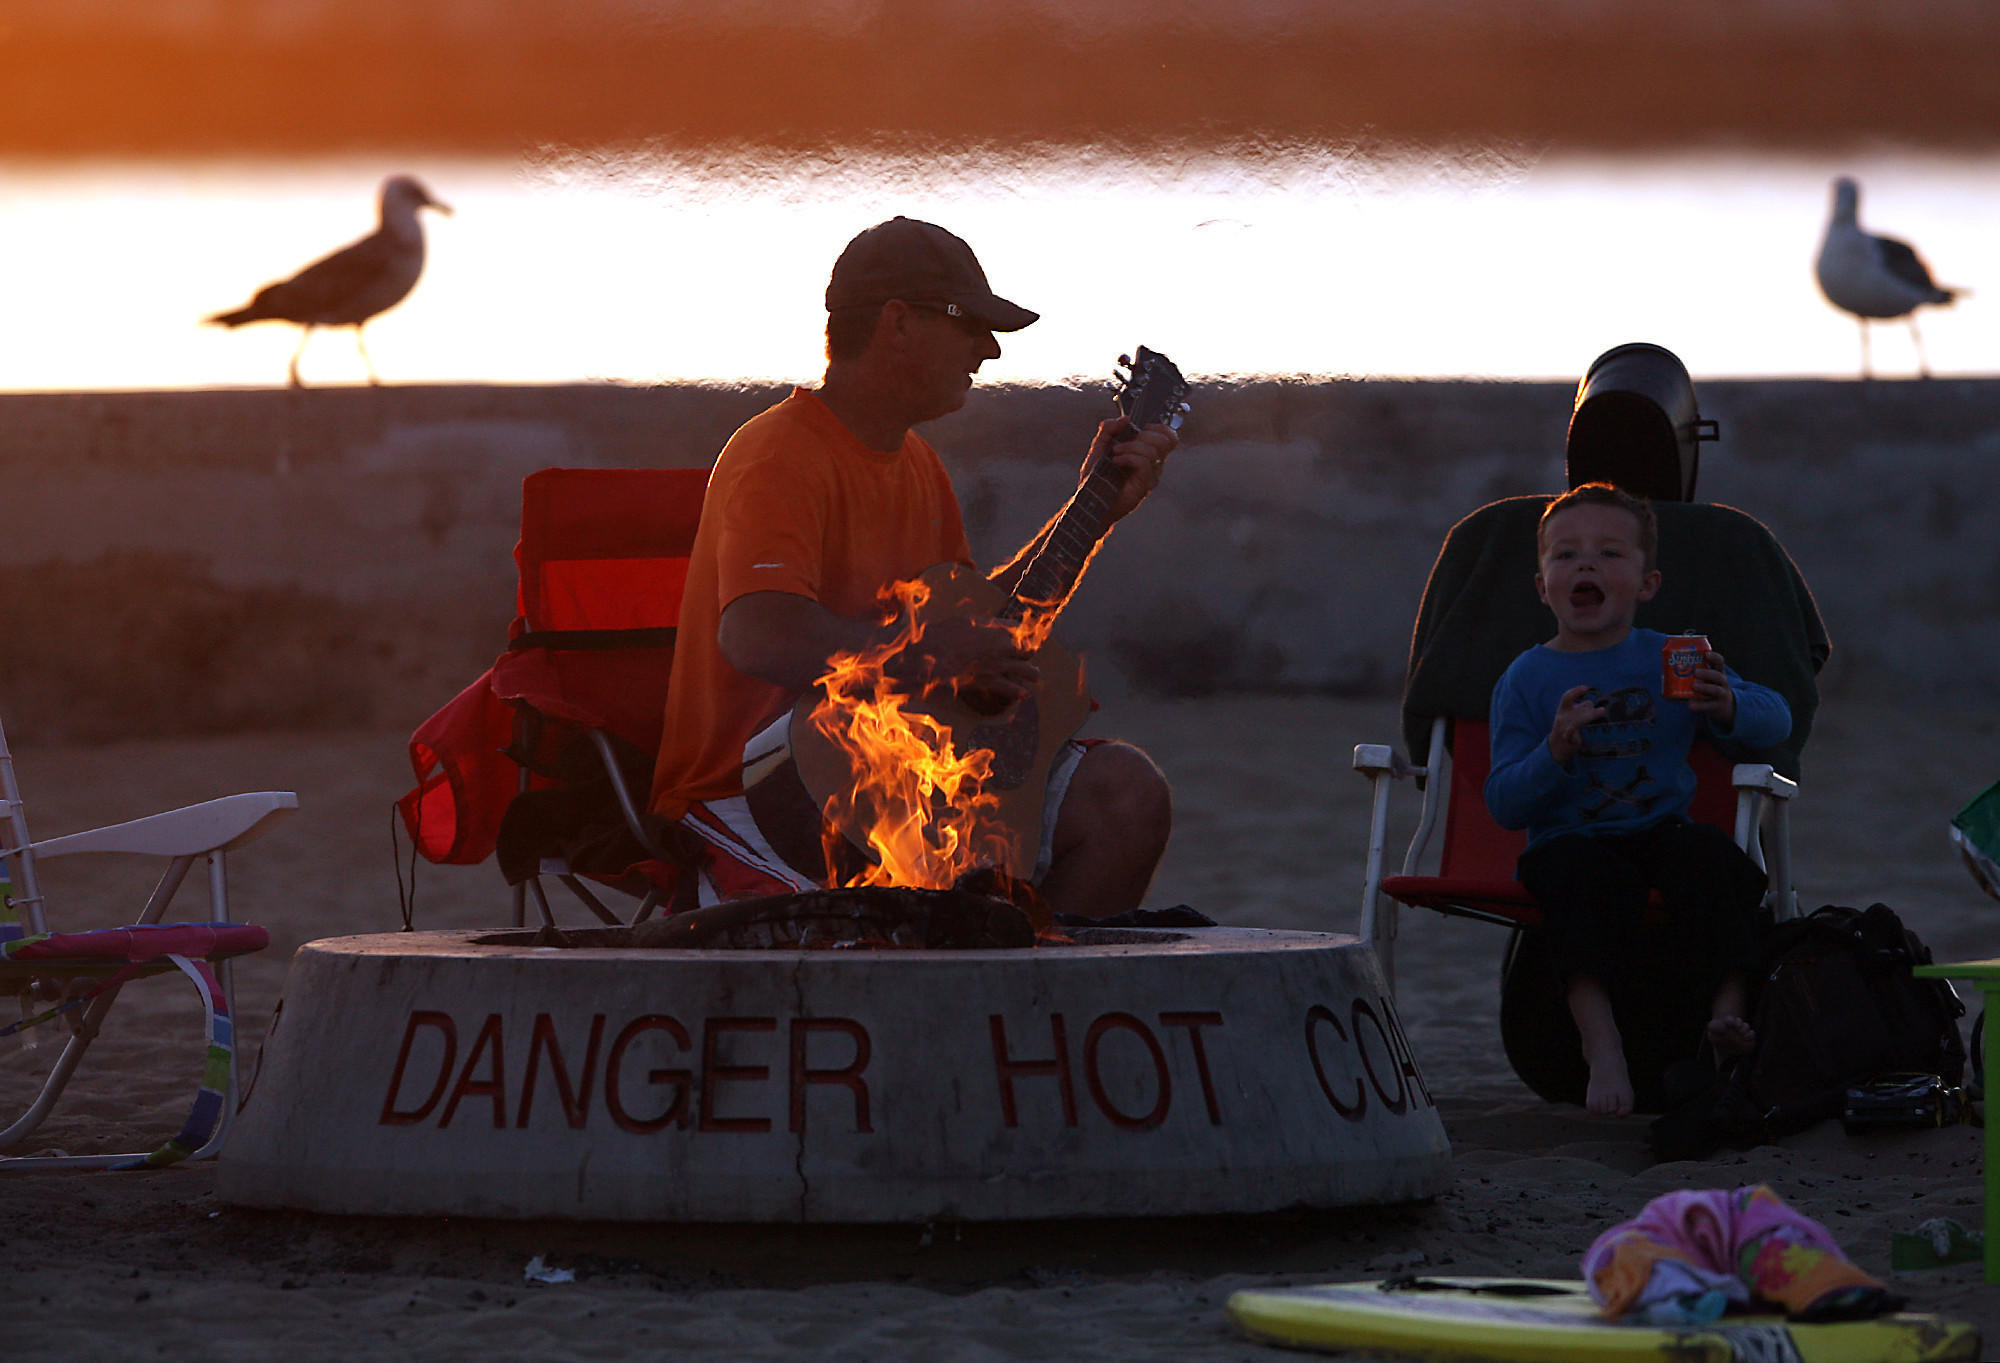 Dave Osinga and his son Zachary sit by the fire as the sun sets at Corona del Mar State Beach.